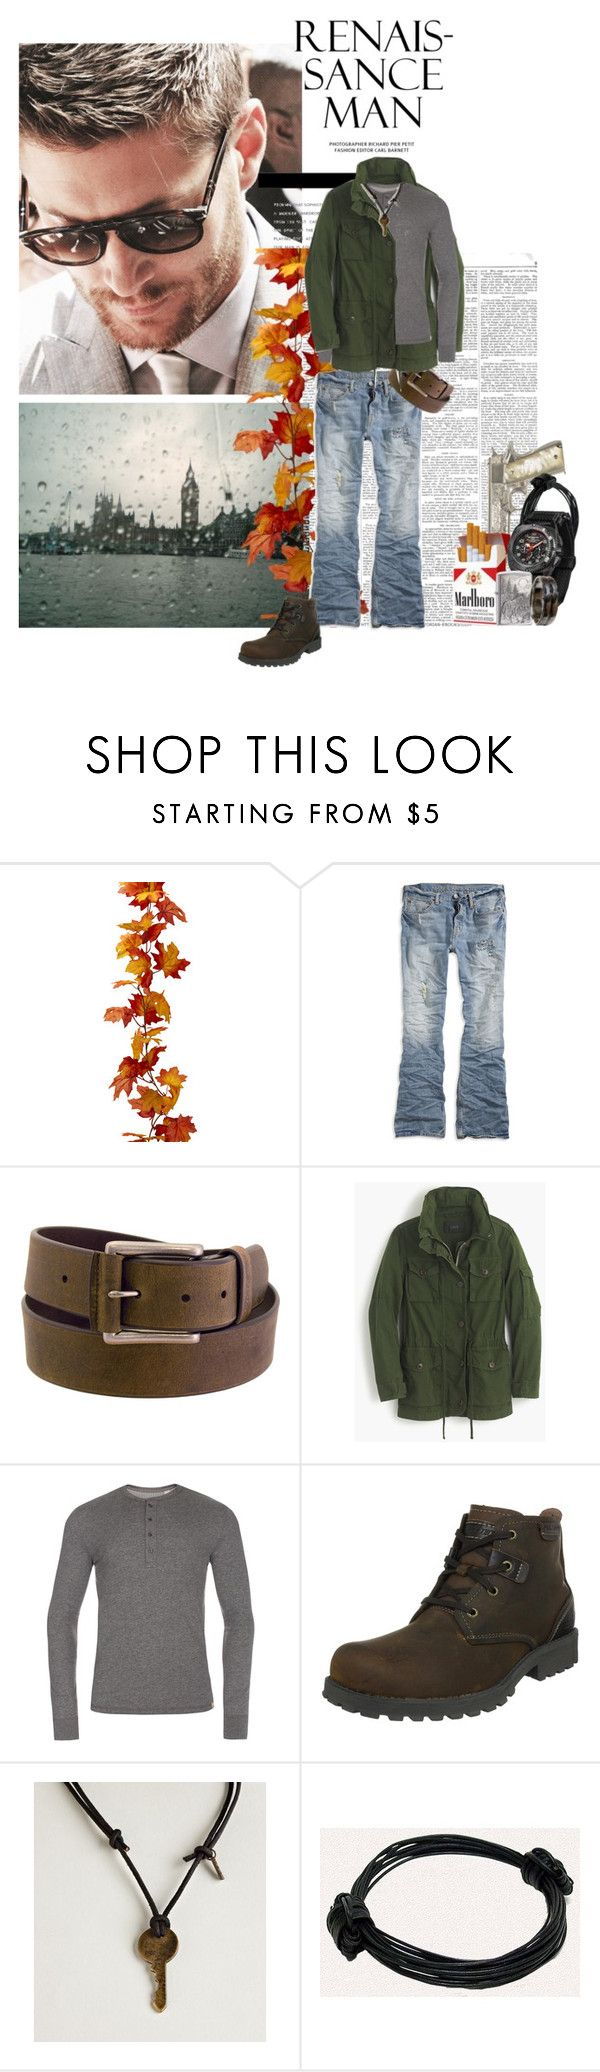 """`another day, another penny"" by mars-phoenix ❤ liked on Polyvore featuring American Eagle Outfitters, Wrangler, J.Crew, Paul Smith, Skechers, MTM Special Ops and Zippo"